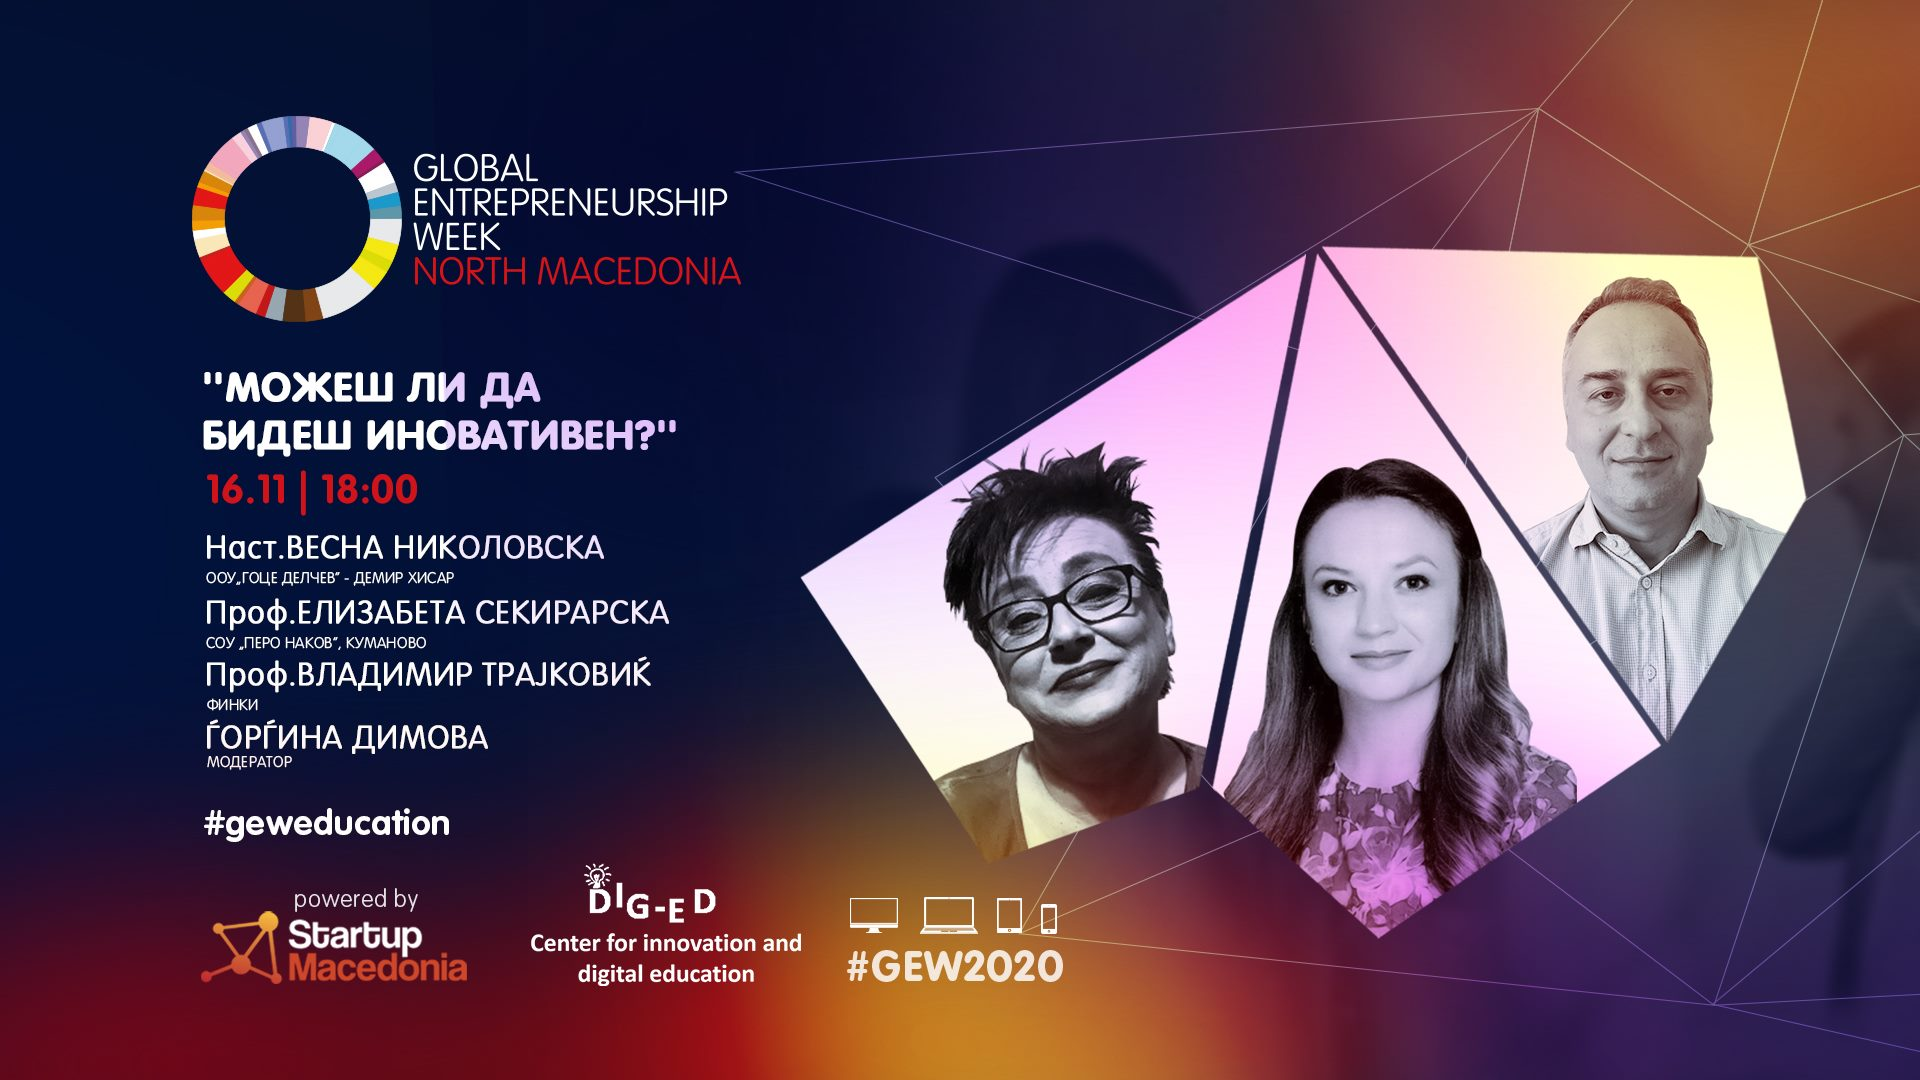 Dig-Ed event on innovations in entrepreneurship-related subjects in primary schools, high schools and Academia in N. Macedonia